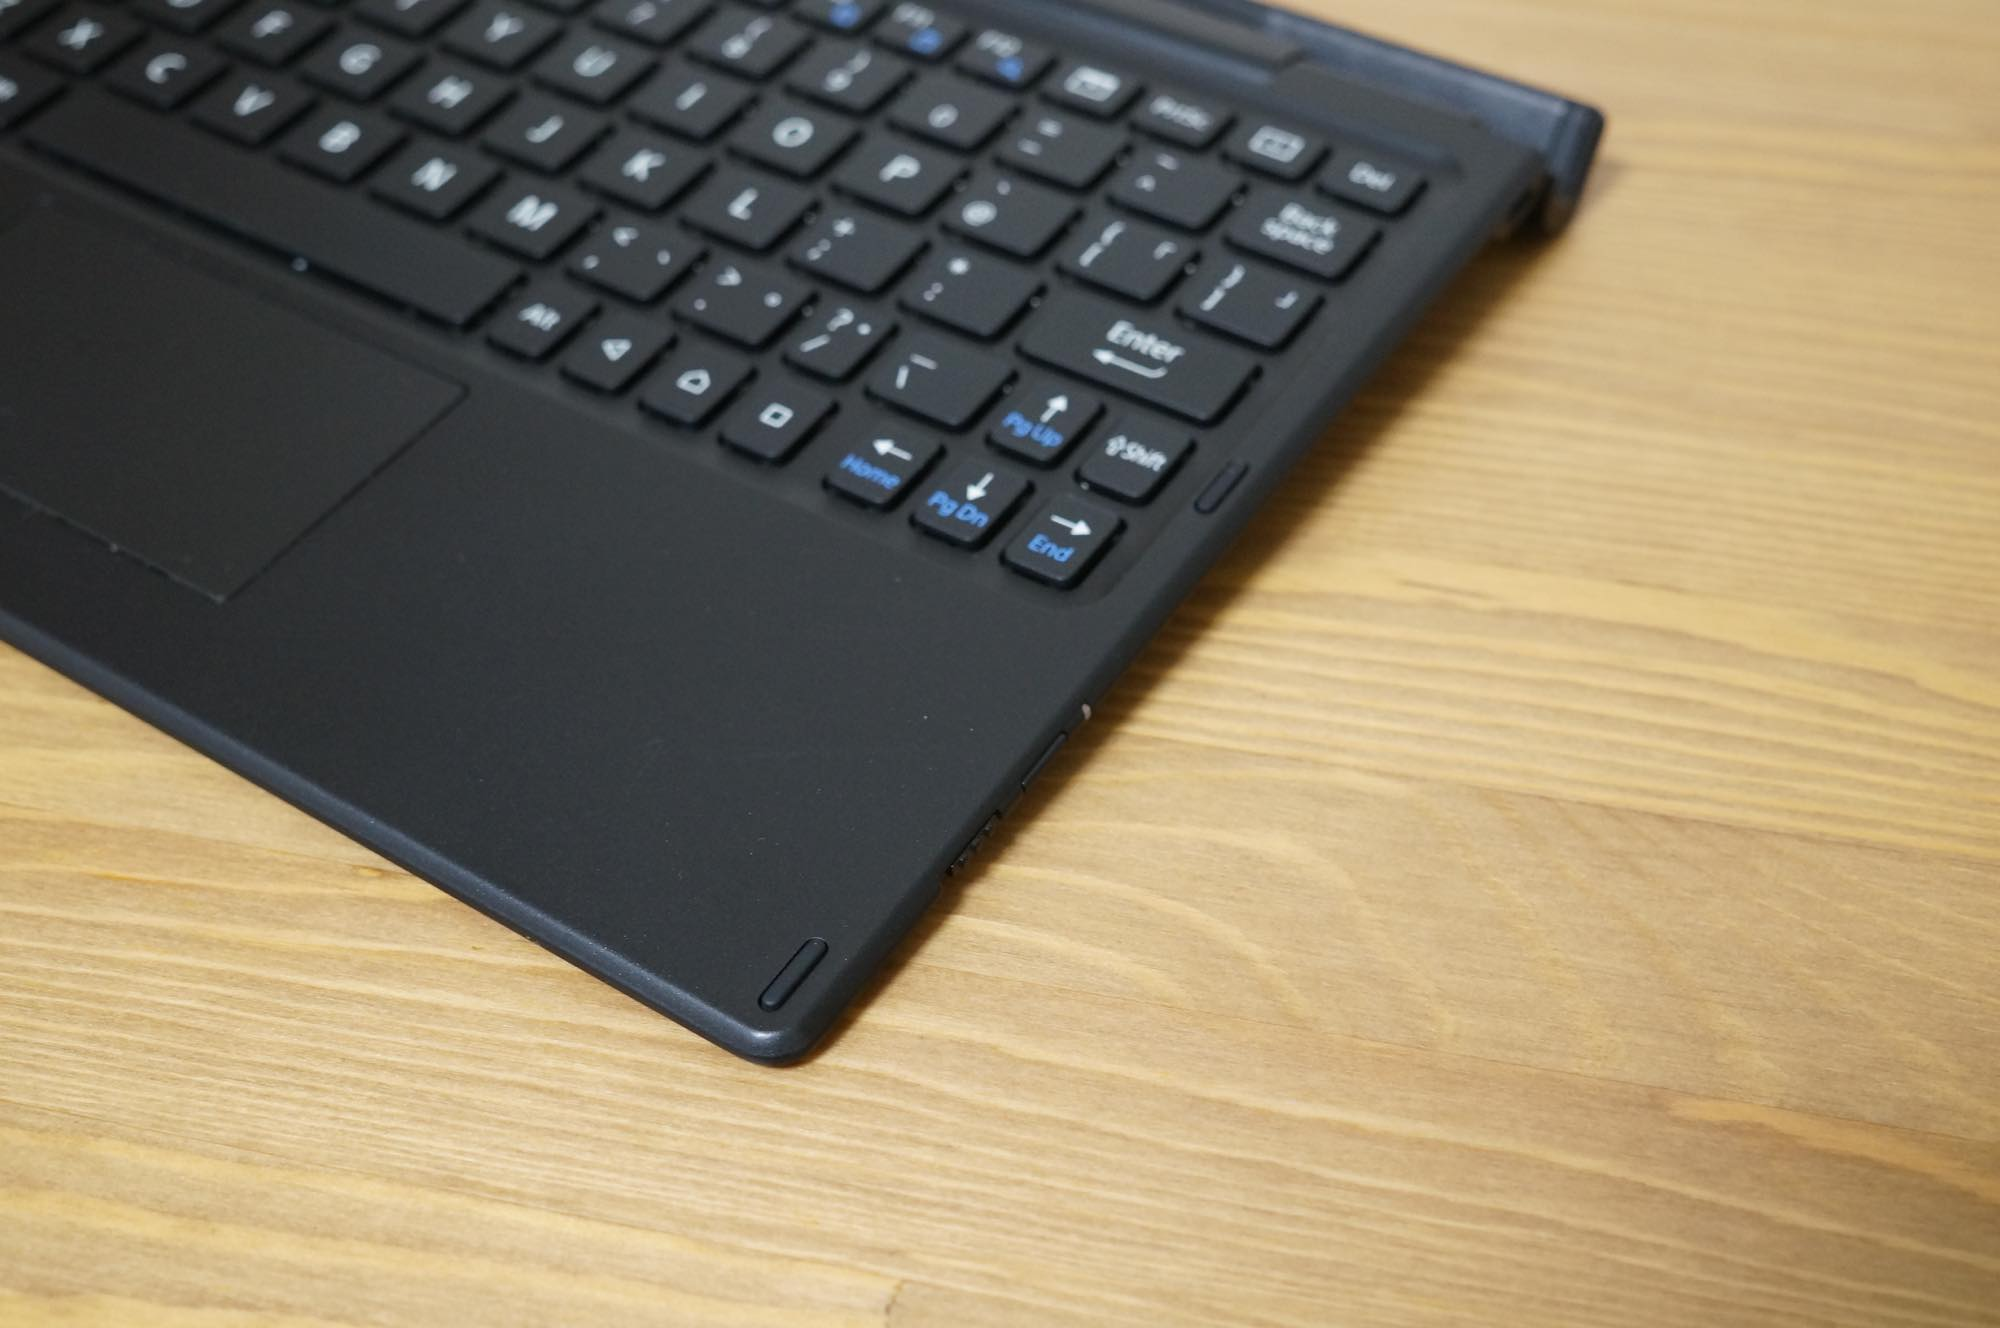 Xperia-Z4-tablet-keyboard8